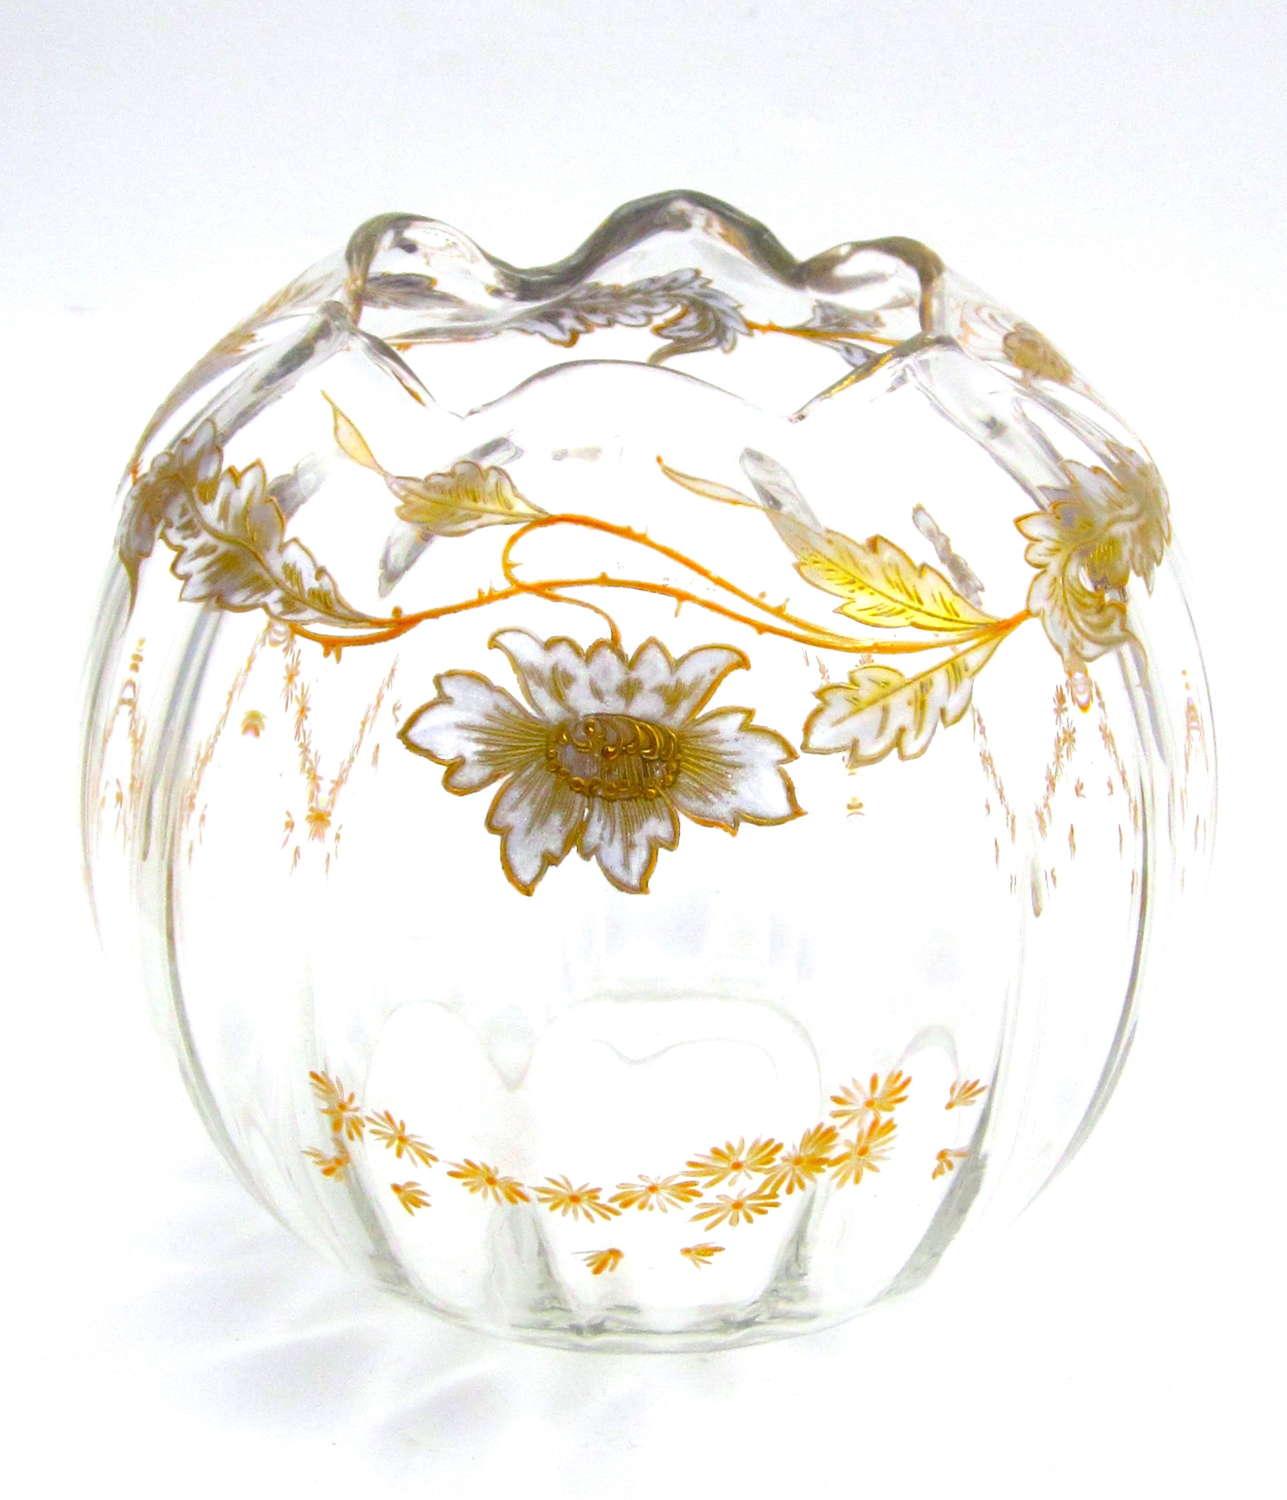 Antique French St Louis Bowl with Pretty Enamelled Daisy Design.